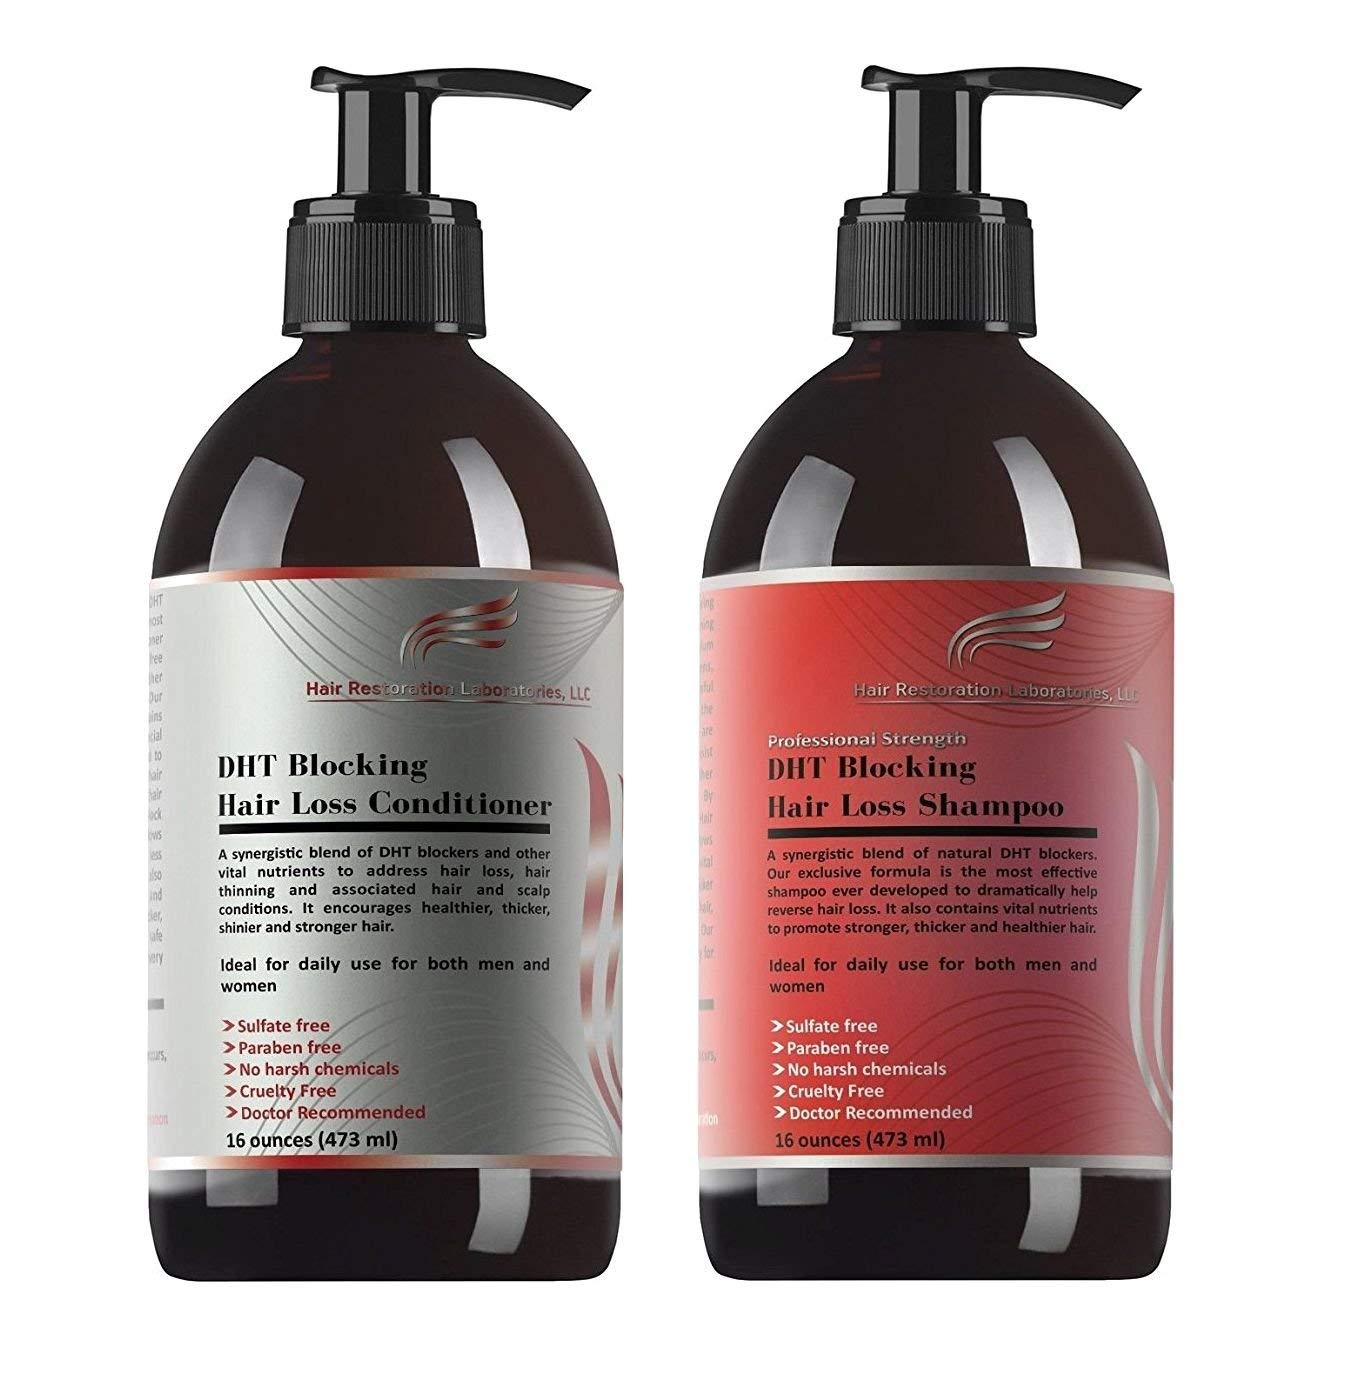 HAIR RESTORATION LABORATORIES' PROFESSIONAL STRENGTH DHT BLOCKING HAIR LOSS  SHAMPOO & CONDITIONER SET-OVER 30 DHT BLOCKERS